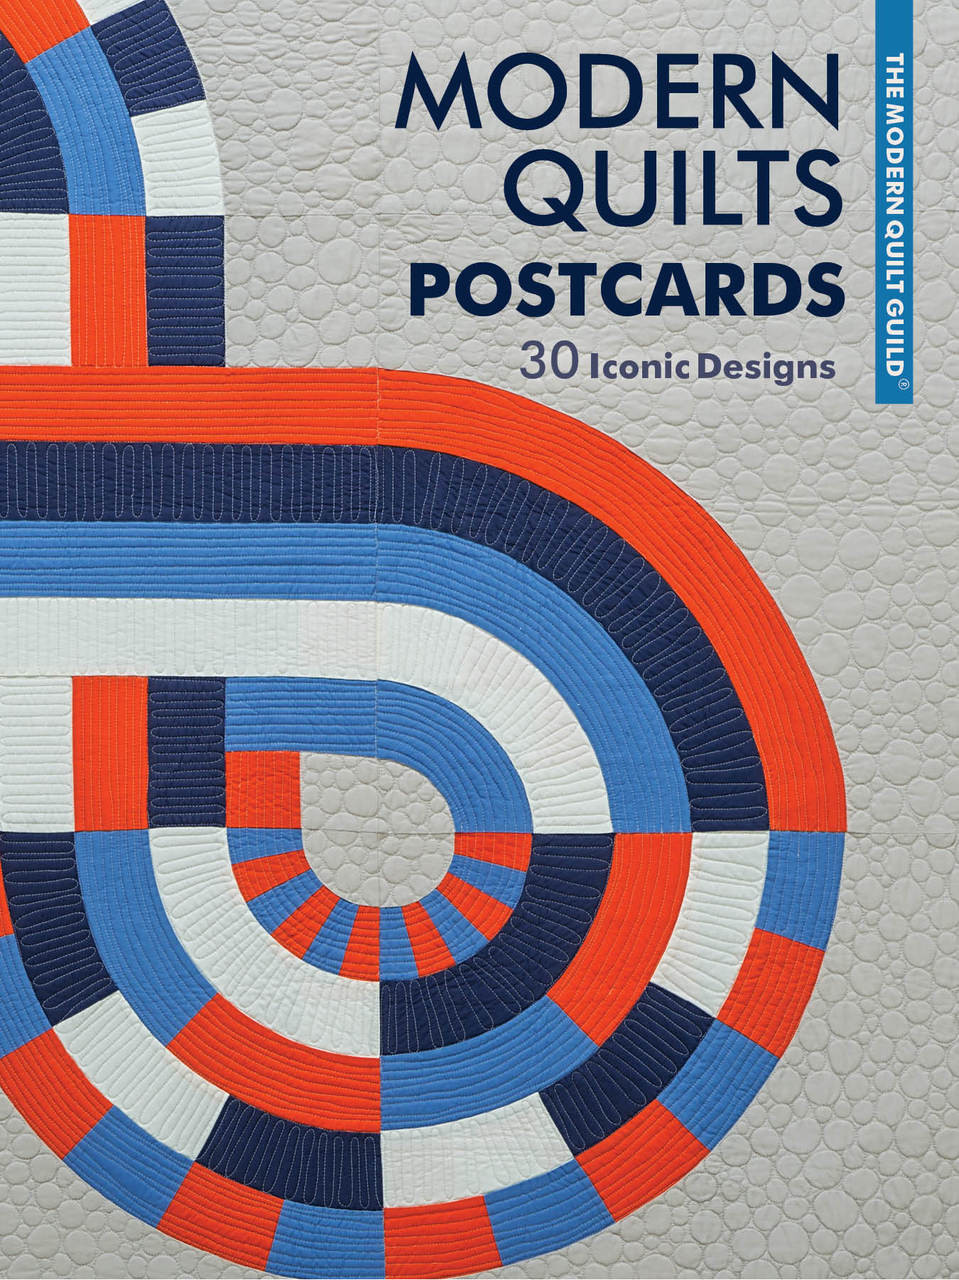 From the talented quilters of the Modern Quilt Guild comes this set of thirty postcards, featuring beautiful images from the best-selling book Modern Quilts: Designs of the New Century. Each postcard showcases a quilt by a different artist, including Maritza Soto, Shannon Page, Kari Anderson, and many others. Send the cards to friends and family or keep them for yourself! The set makes a wonderful gift for anyone, but especially for quilters and art lovers.